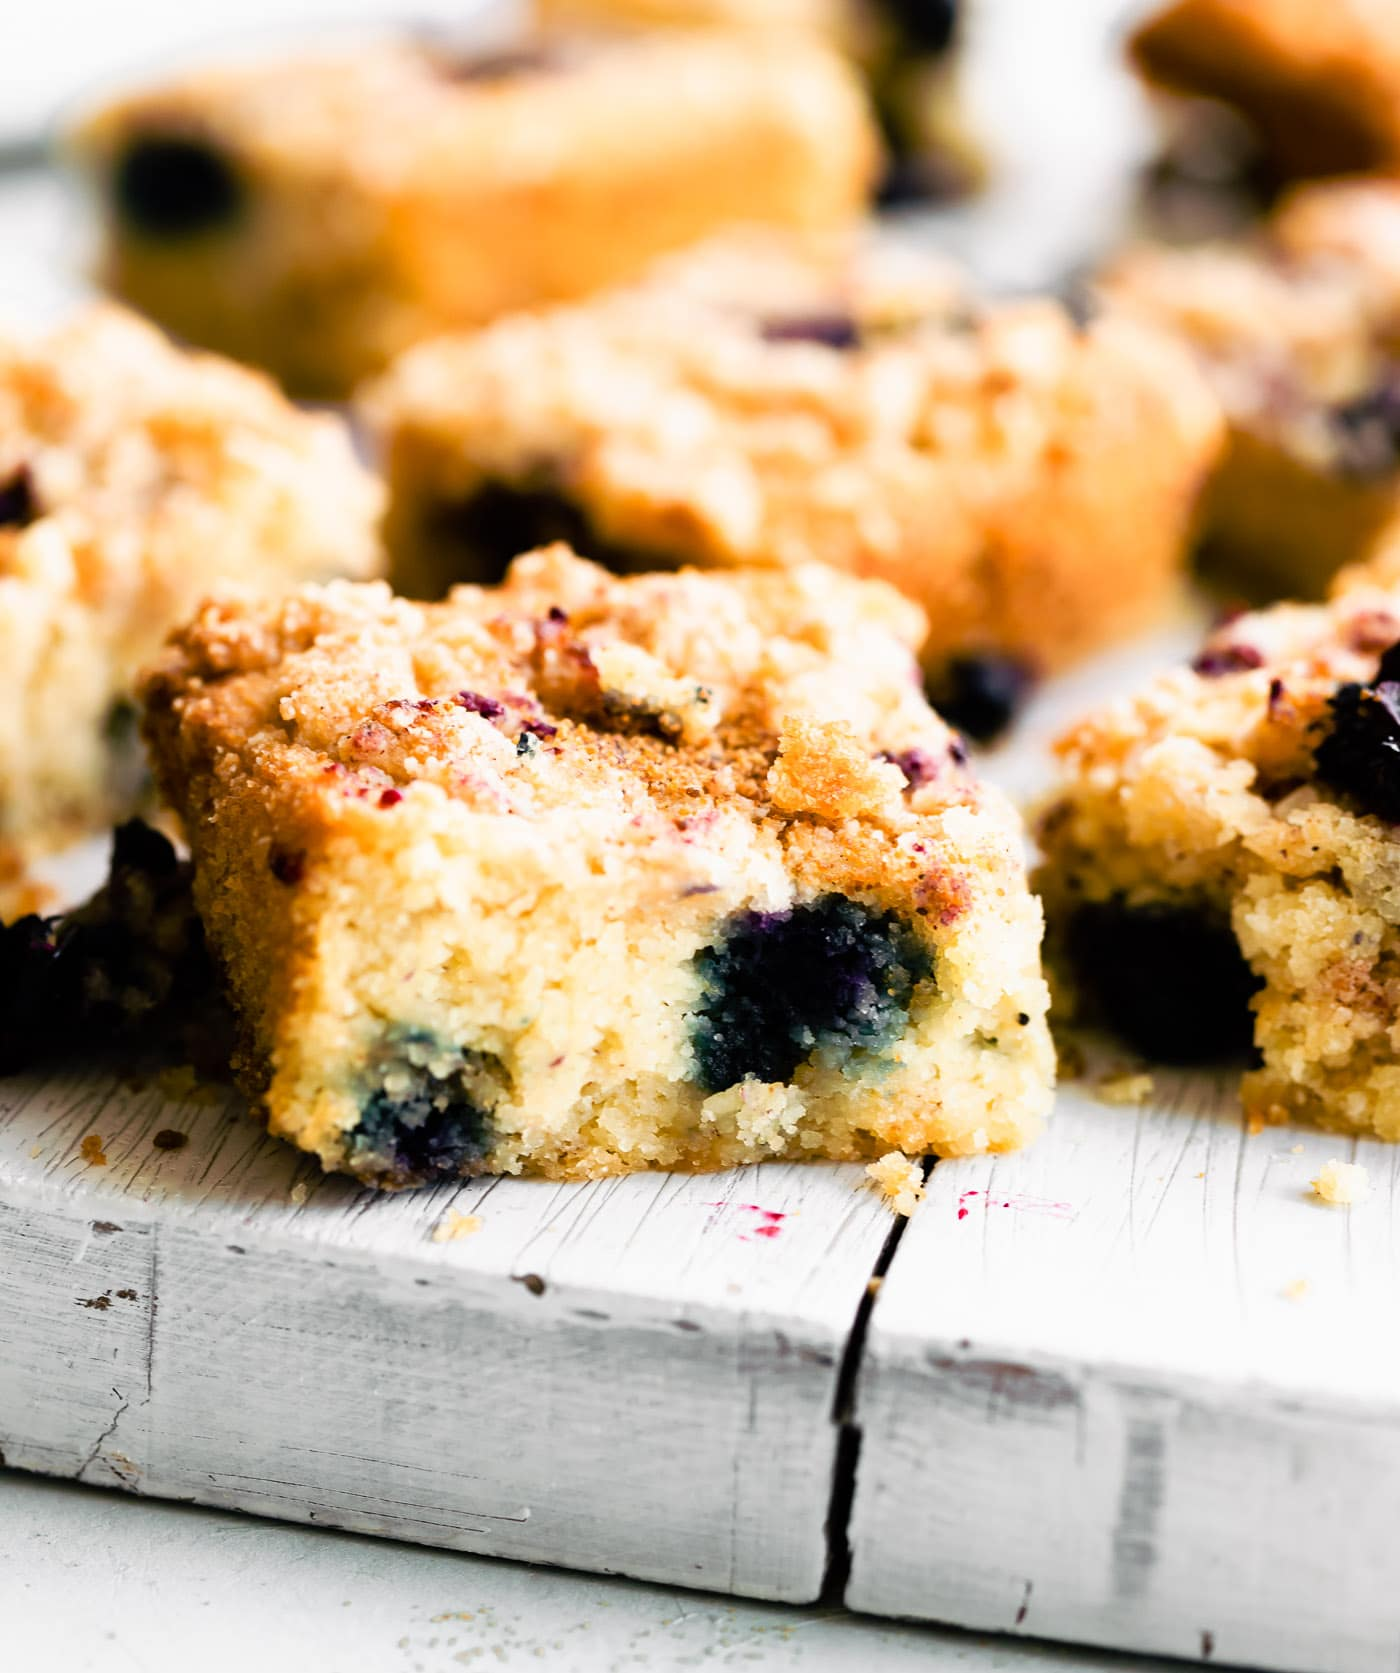 blueberry cake sliced in squares